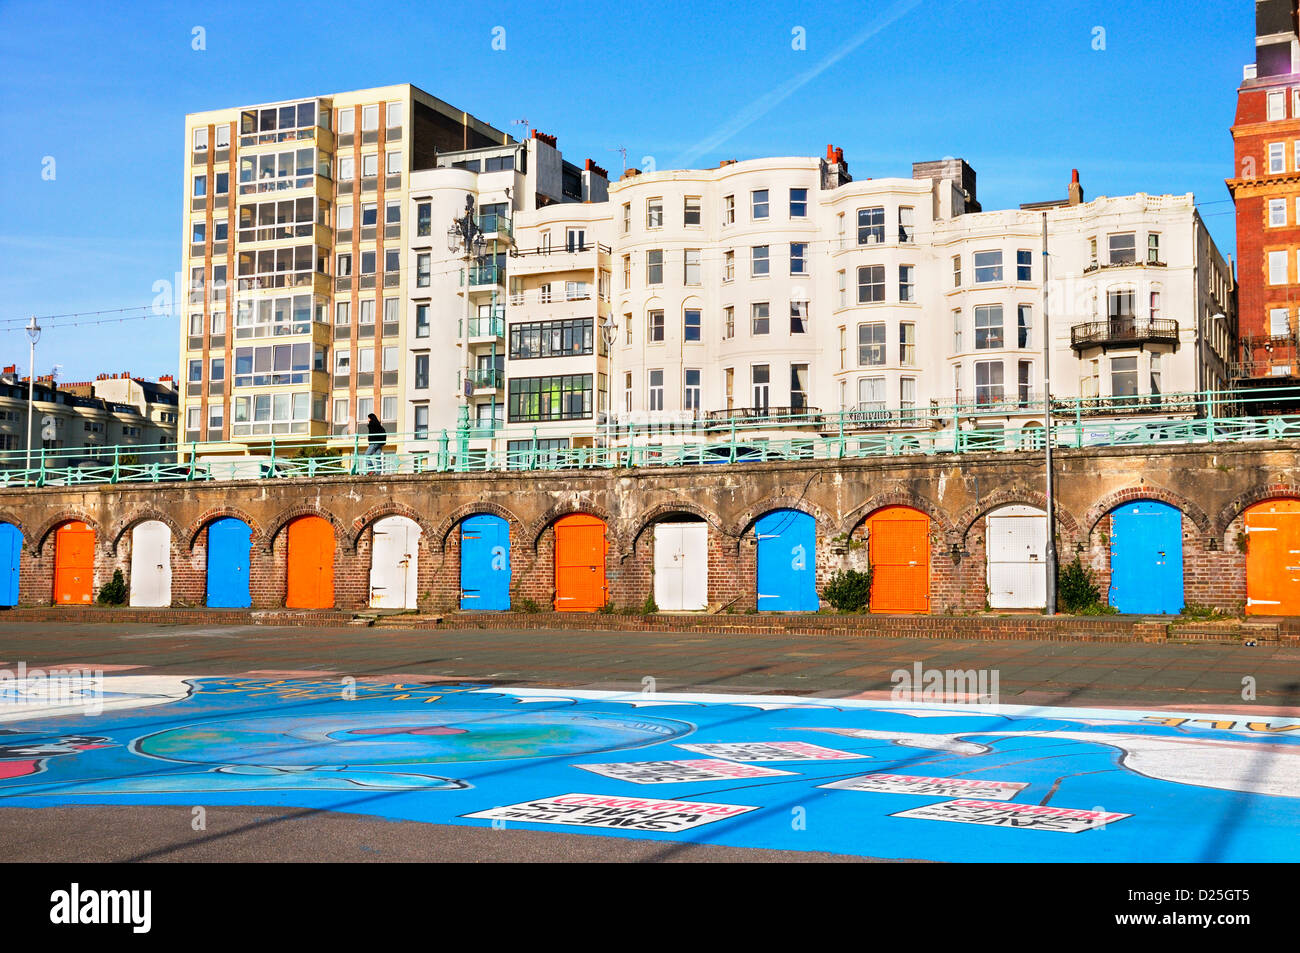 King's Road Arches on Brighton seafront, East Sussex, UK Stock Photo